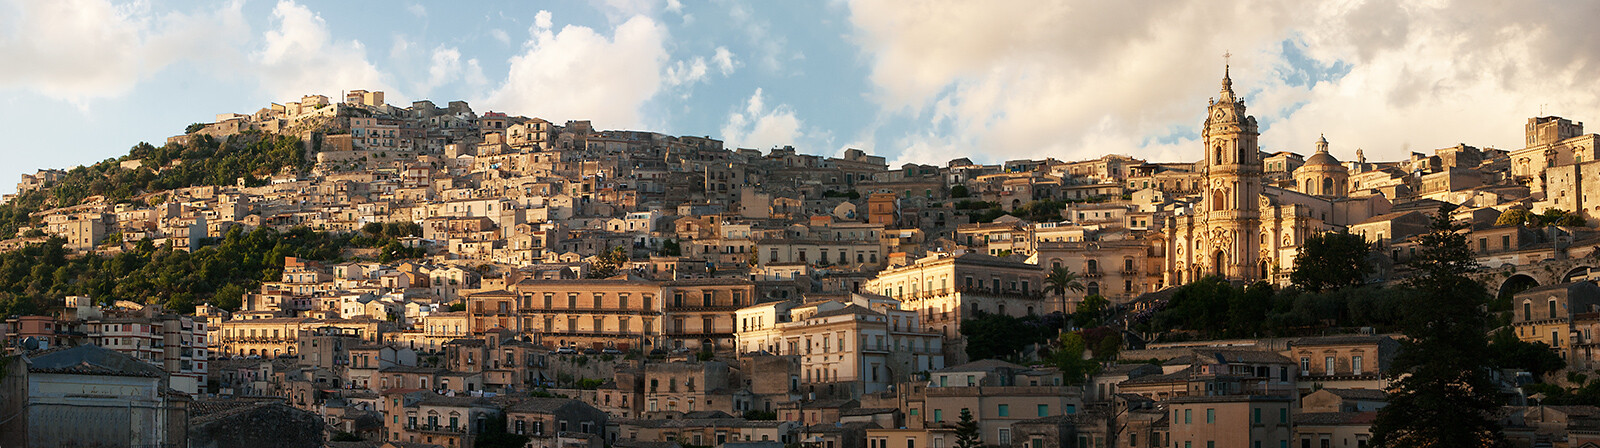 Modica by Larry Yust